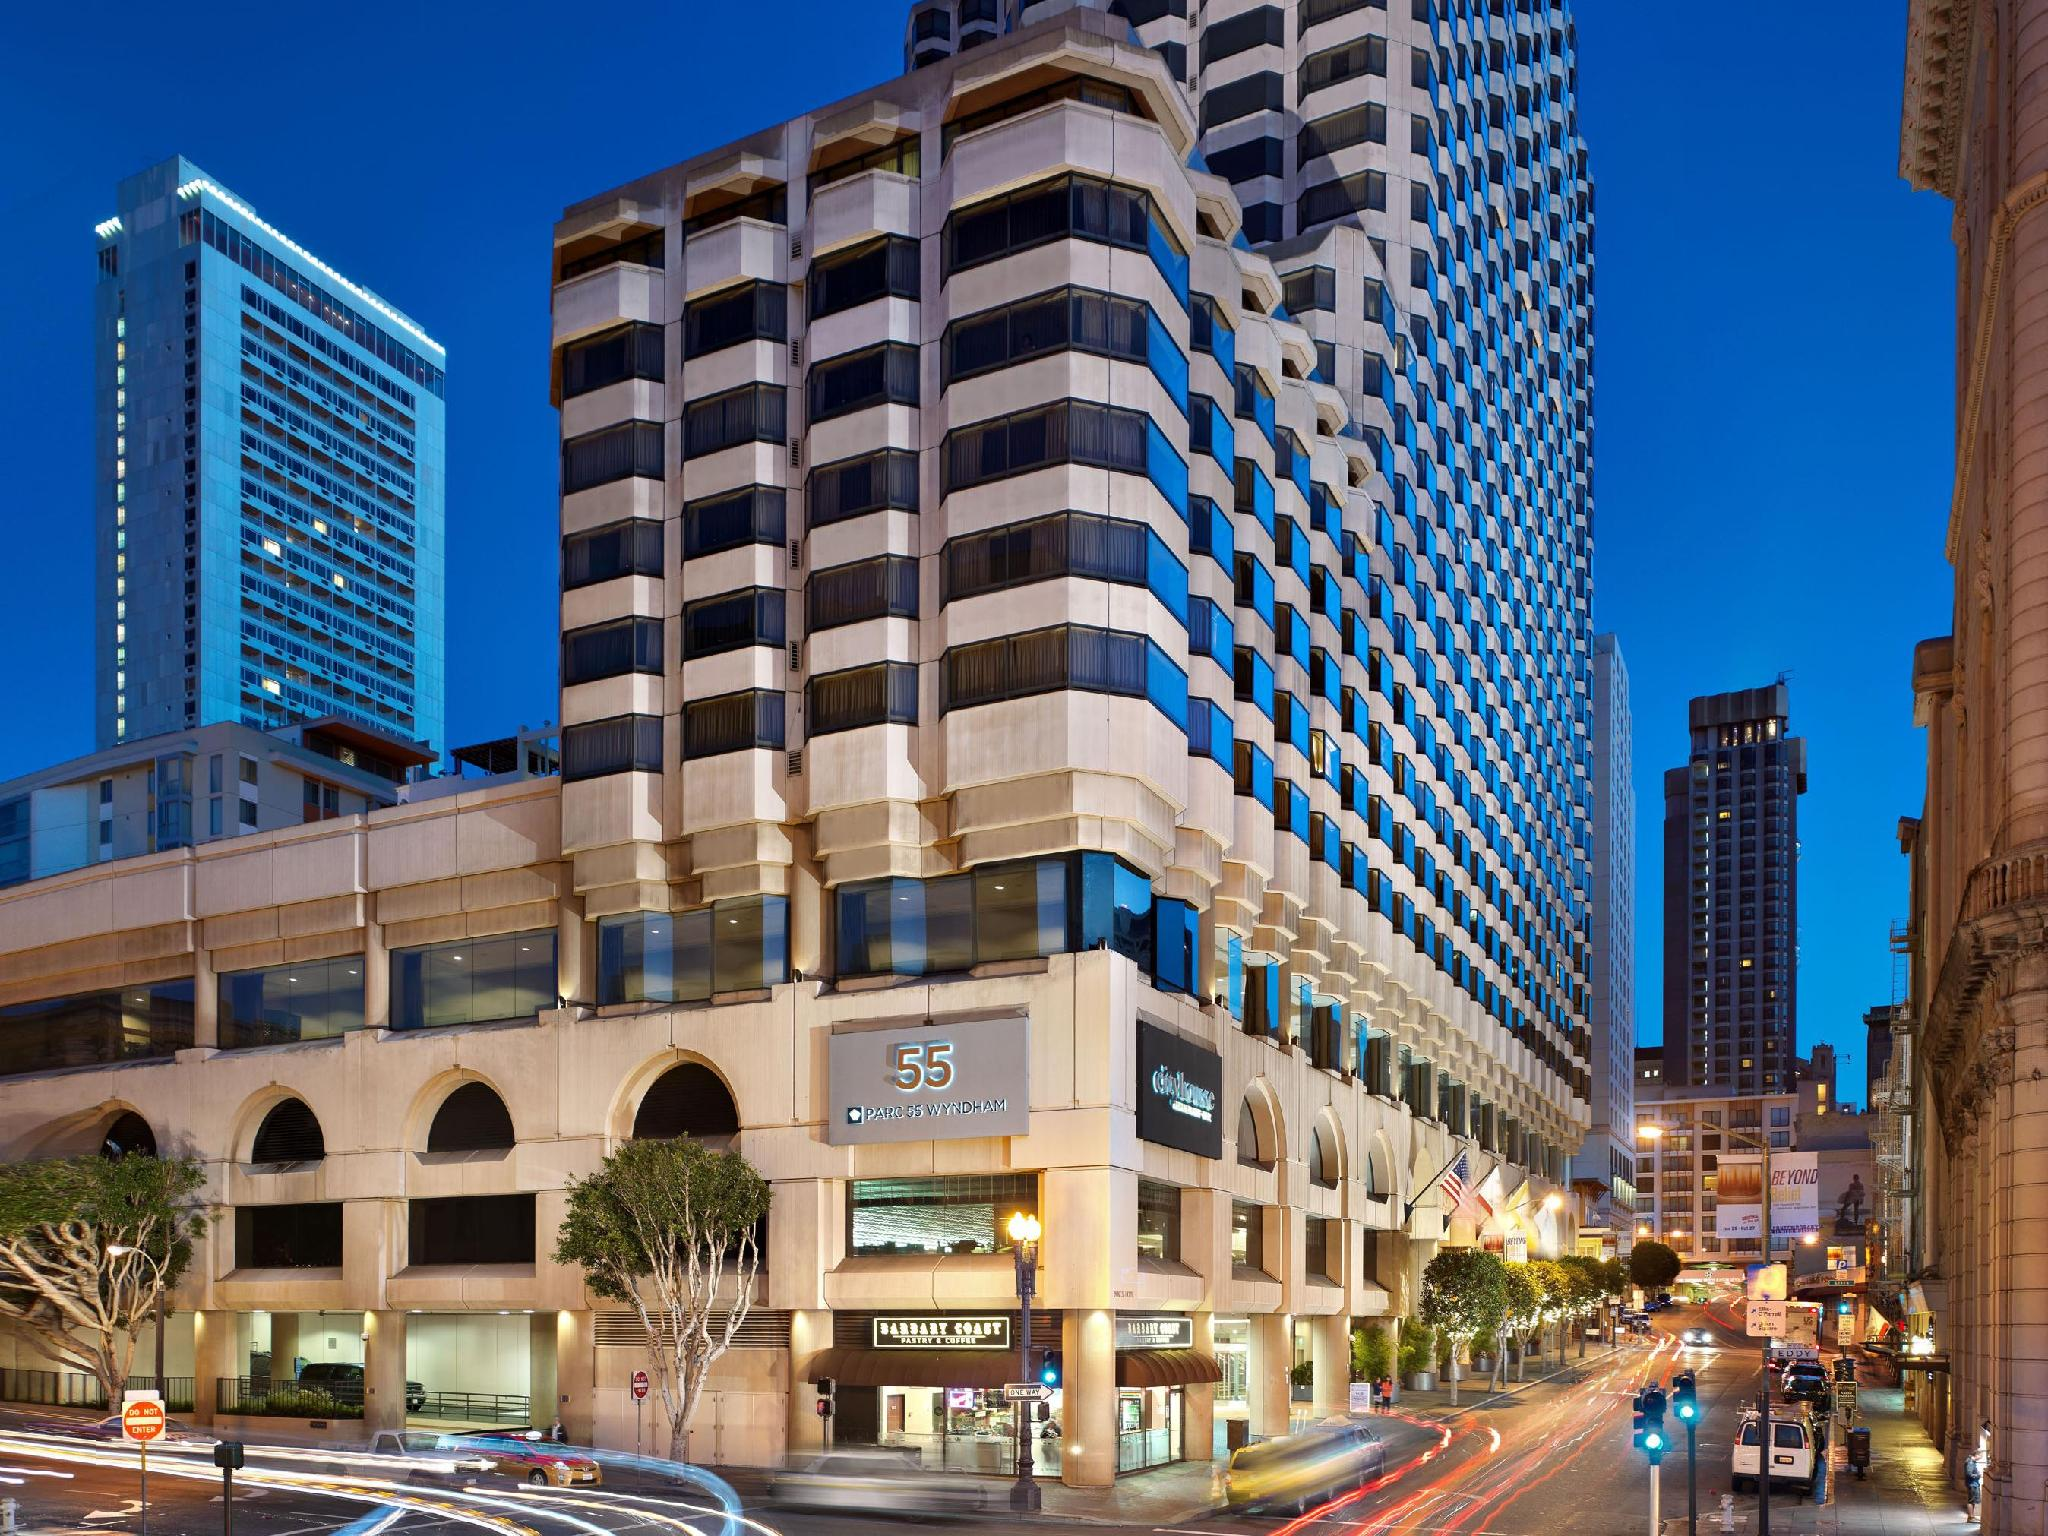 Parc 55 Wyndham San Francisco - Union Square Hotel